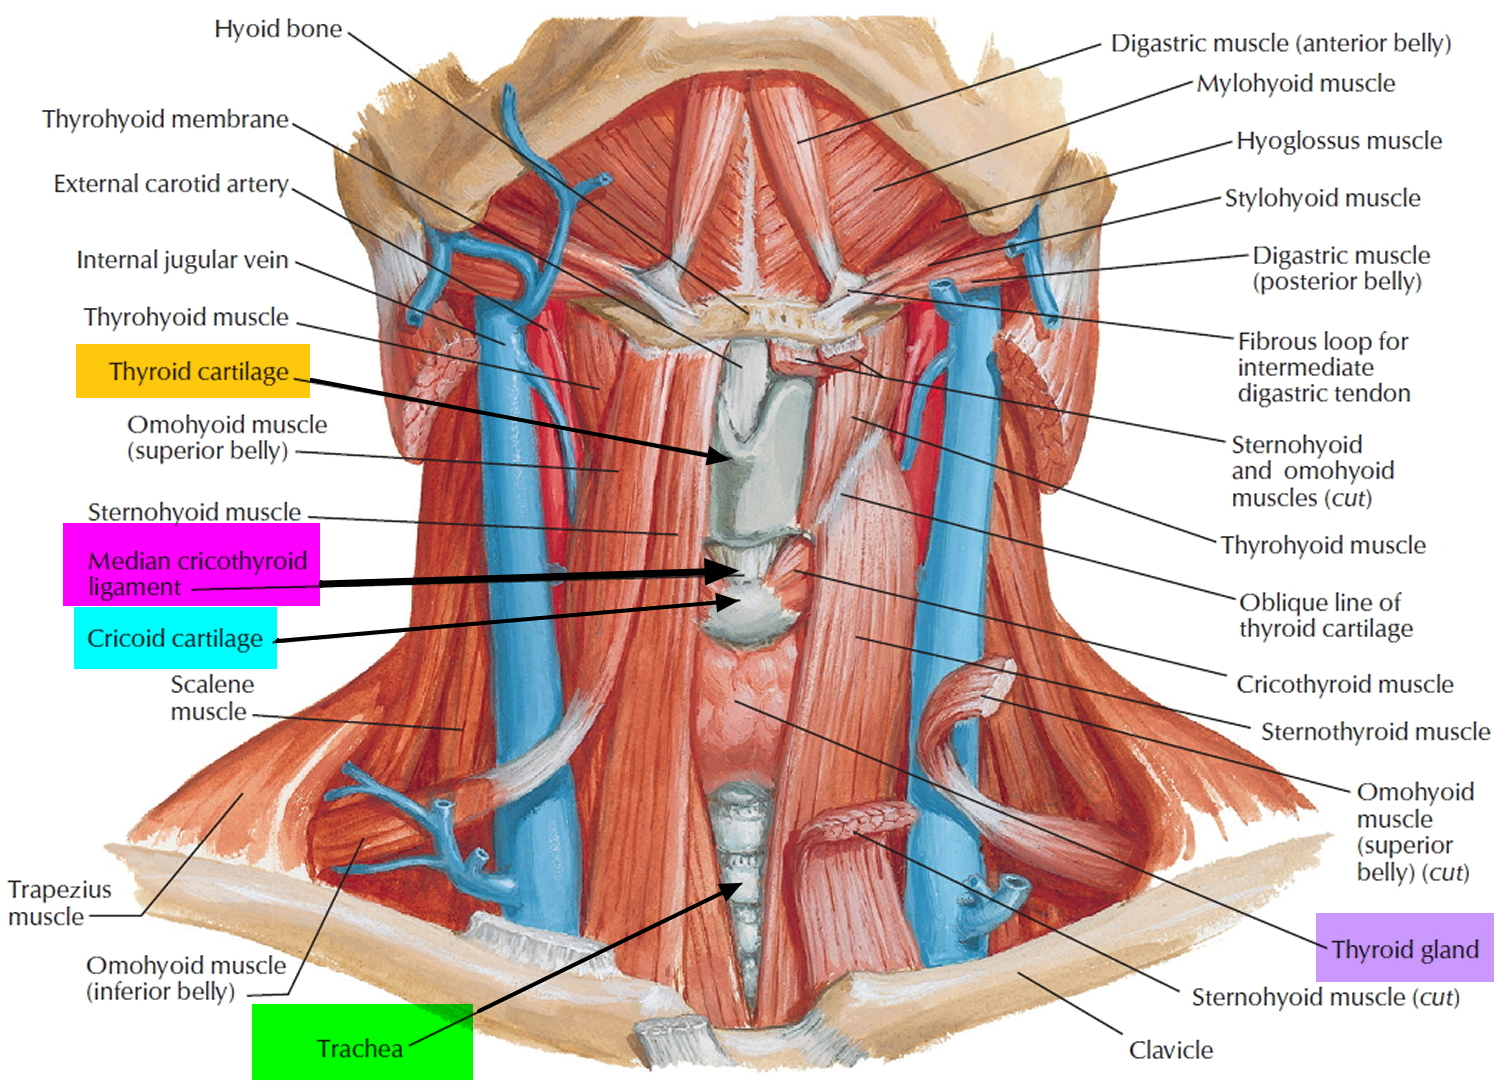 Anatomy of the neck and throat